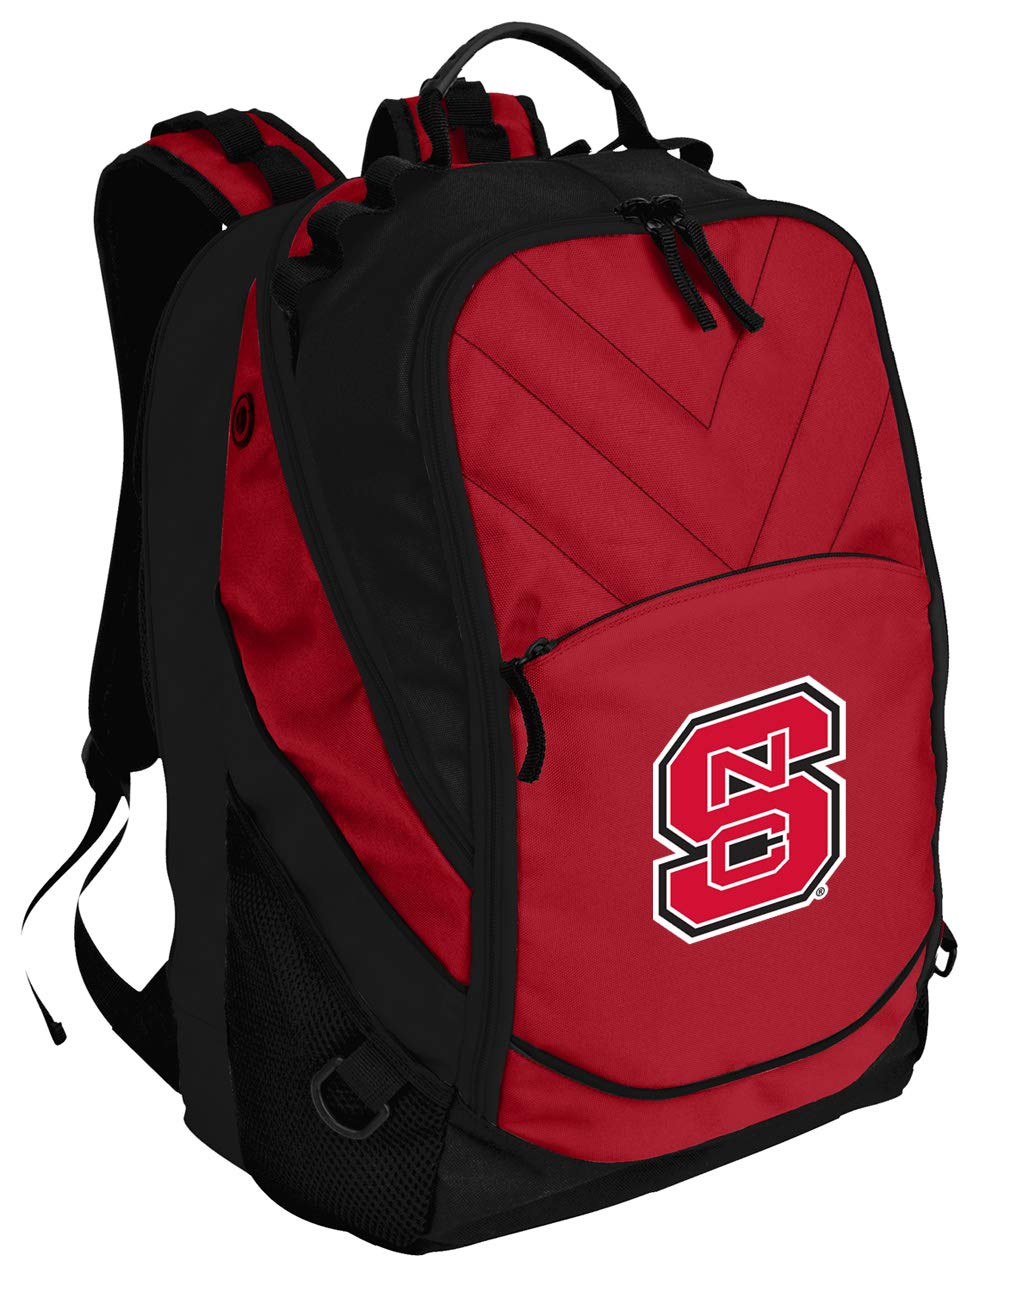 Broad Bay NC State Wolfpack Backpack Red NC State Laptop Computer Bags by Broad Bay